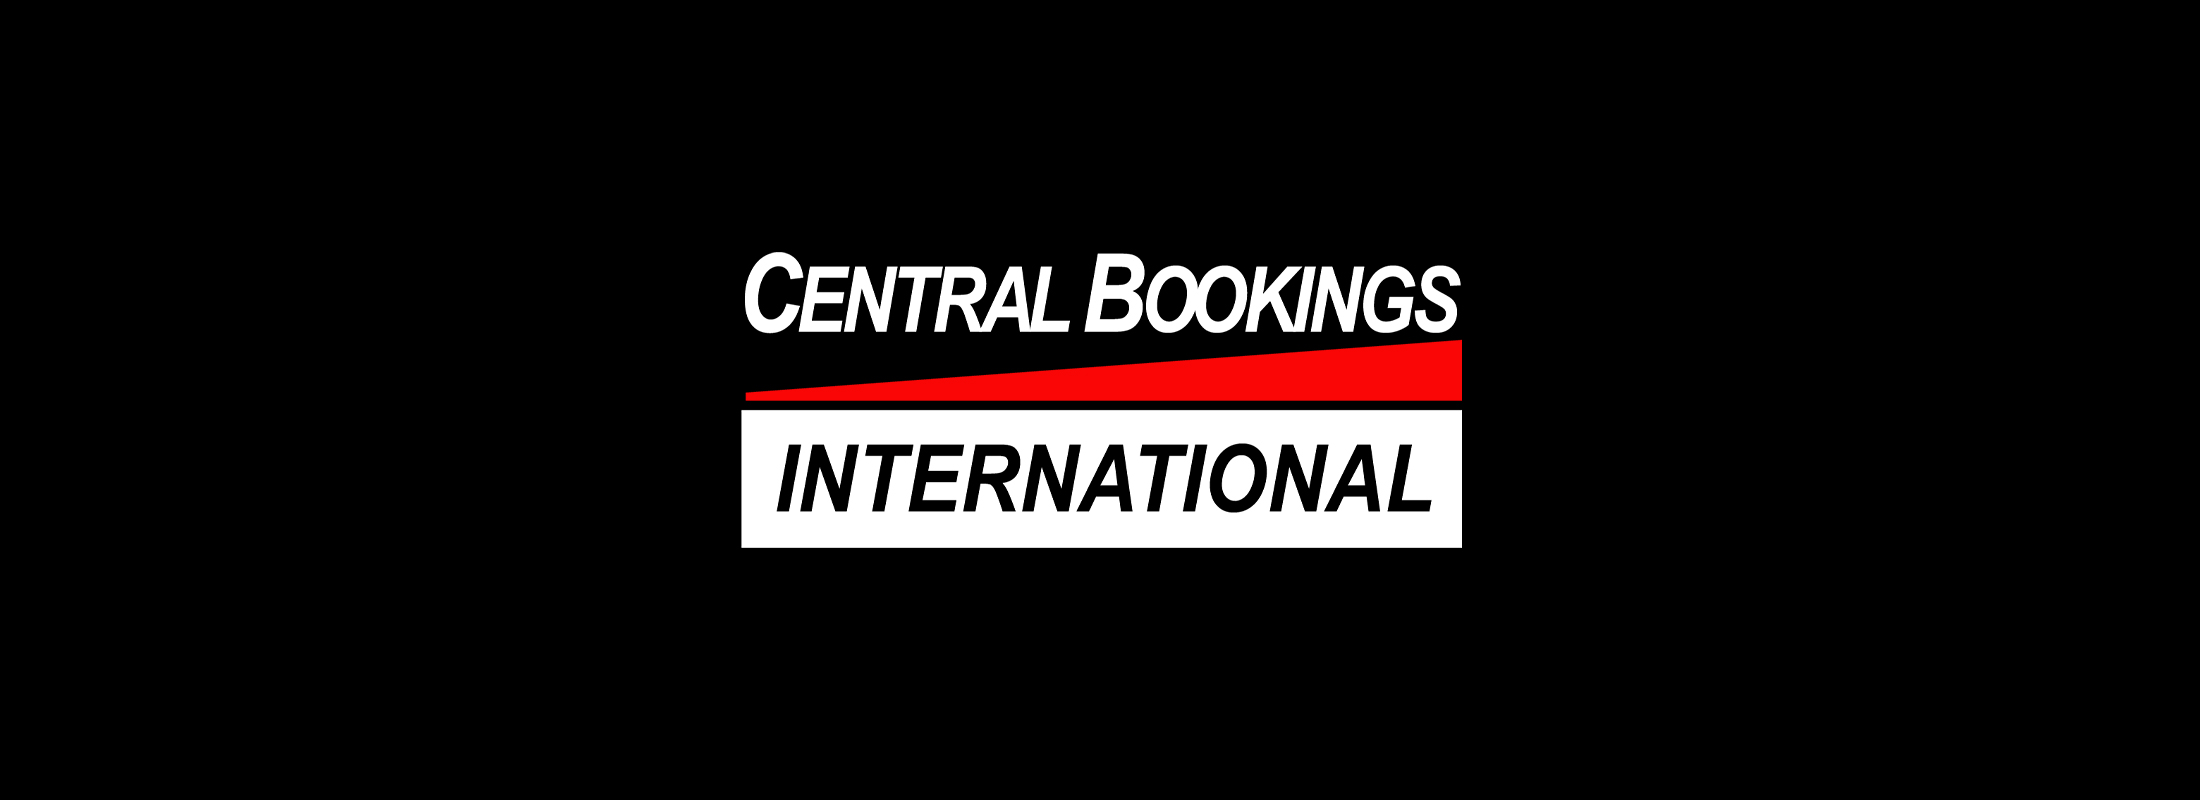 CENTRAL BOOKINGS INTL